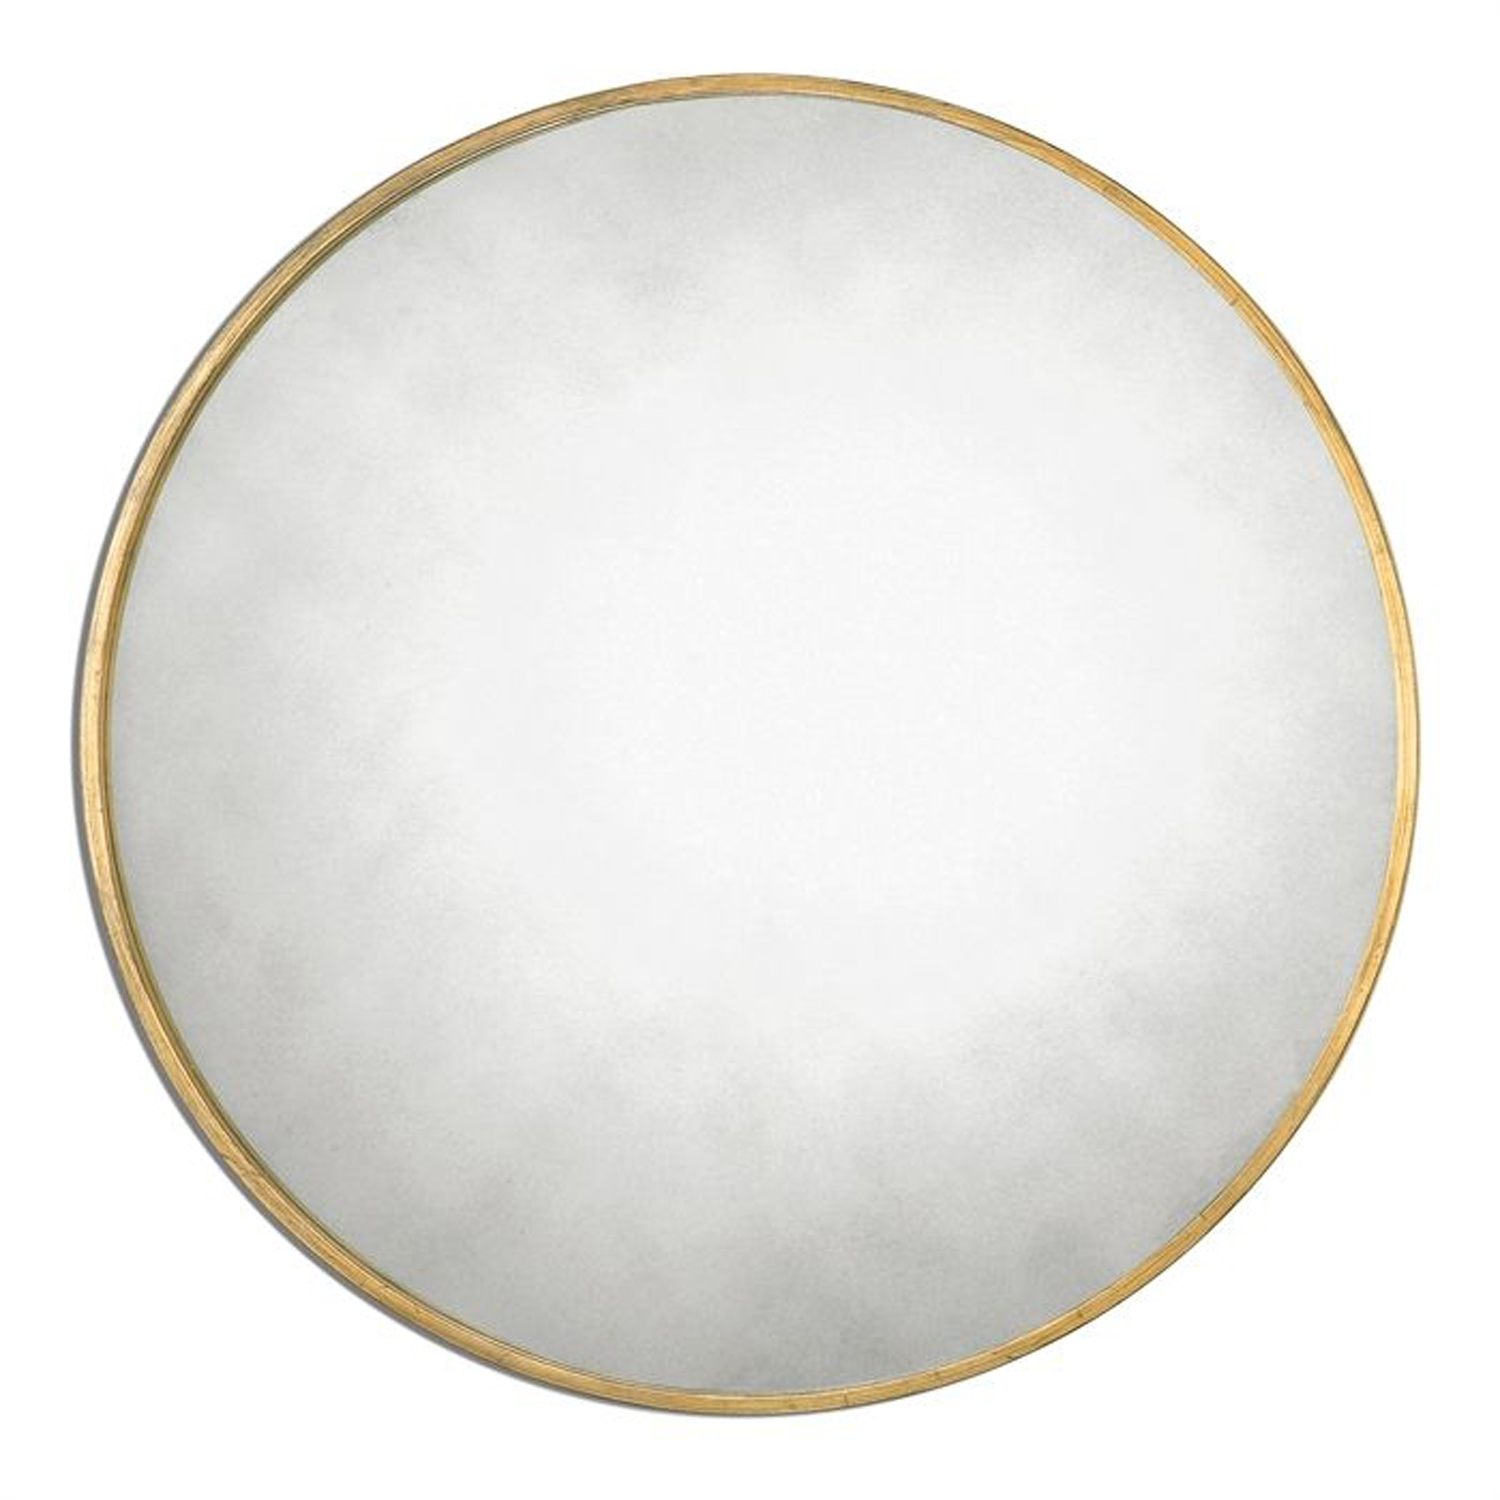 Round Mirrors Decorative Mirrors Bellacor For Large Circular Mirrors (Image 13 of 15)